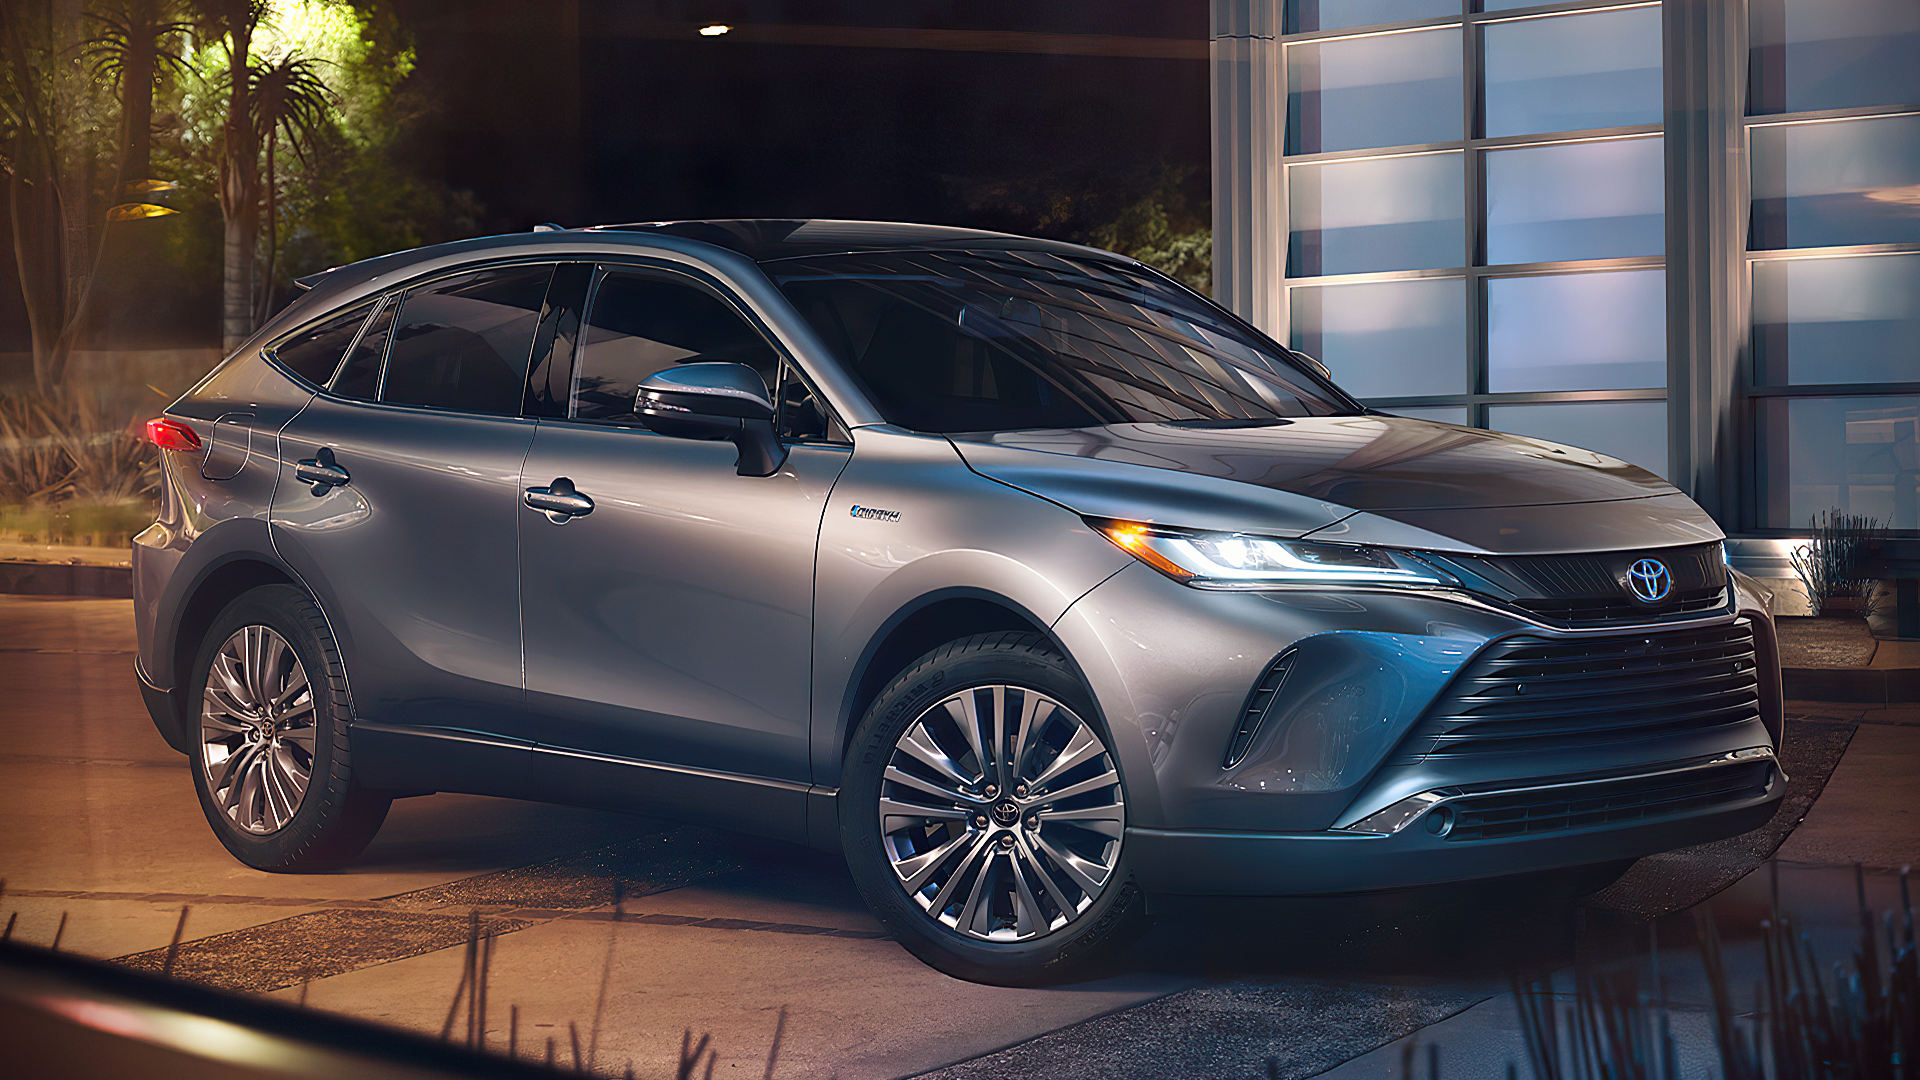 2021 Toyota Venza Wallpaper Pictures